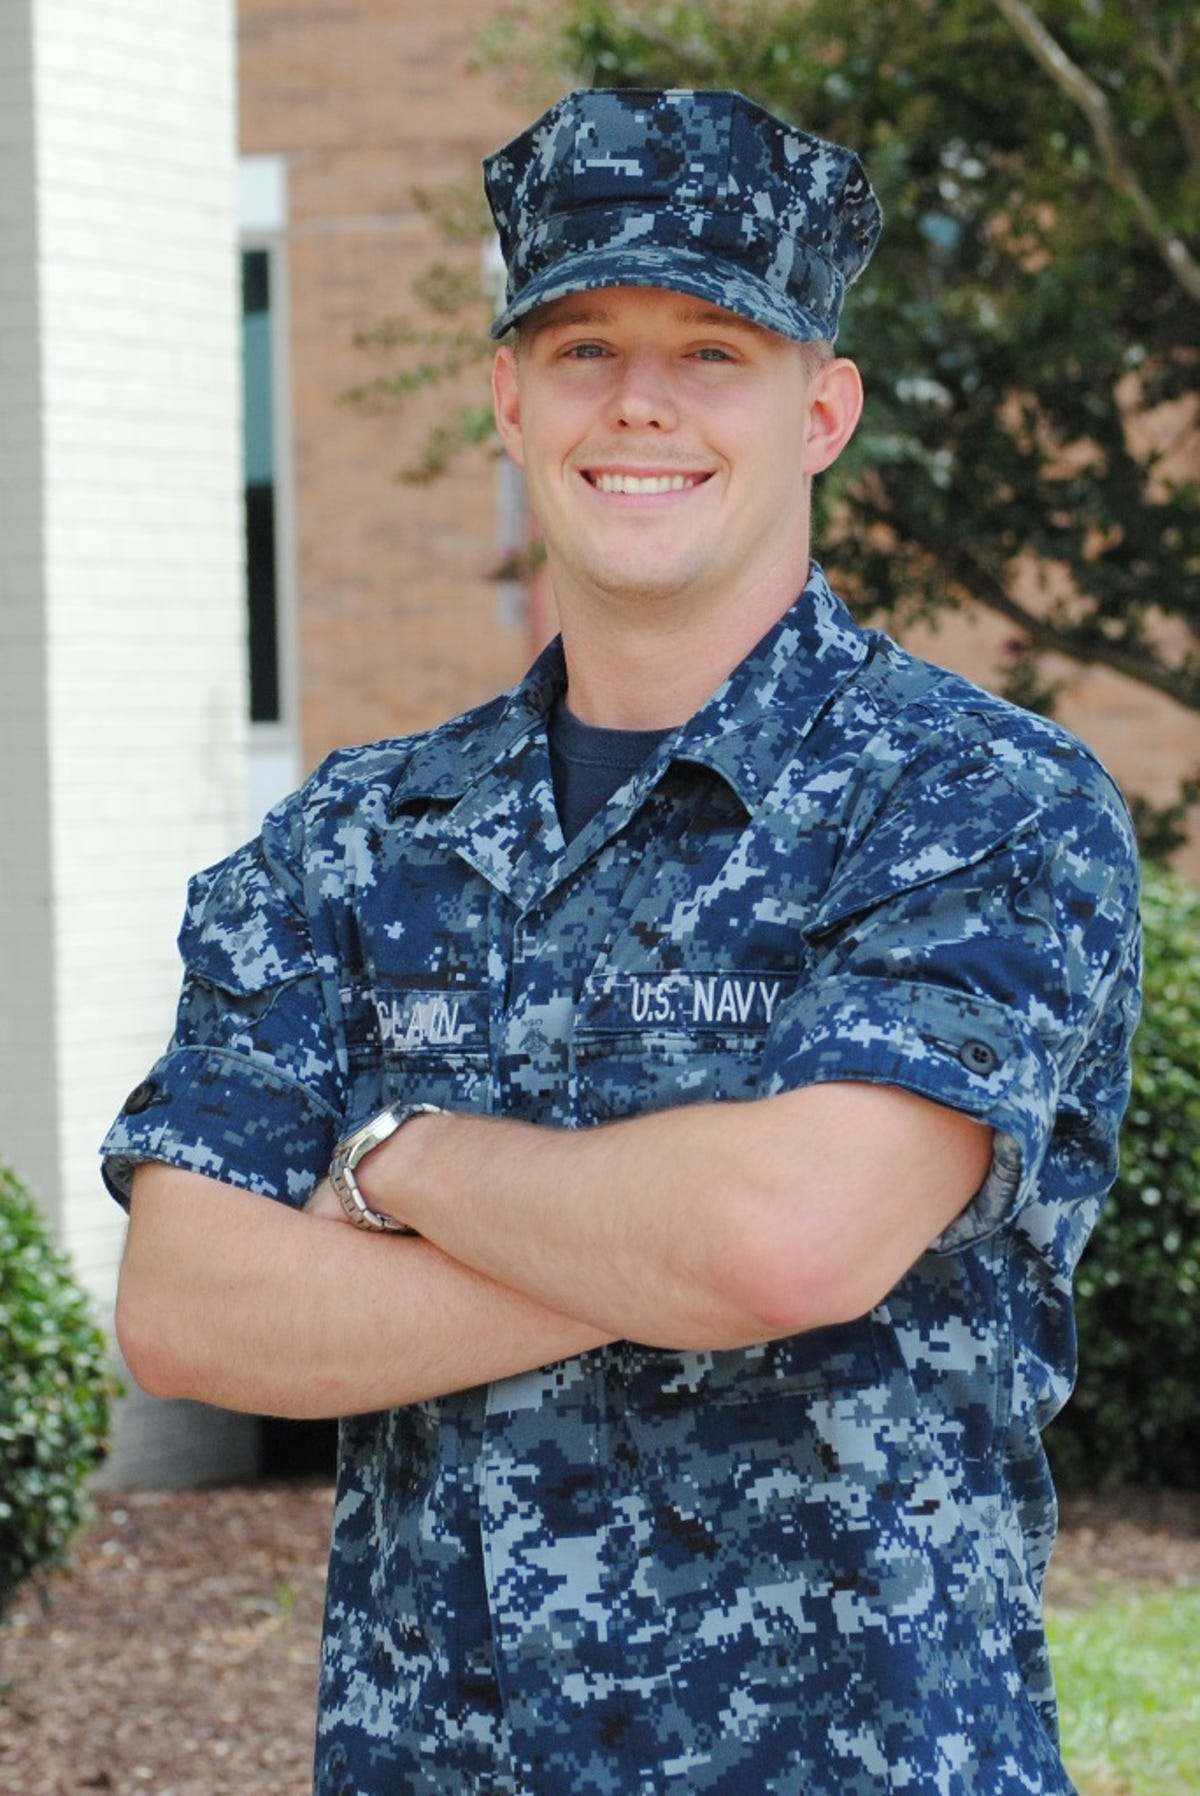 Marbury native serves aboard aircraft carrier